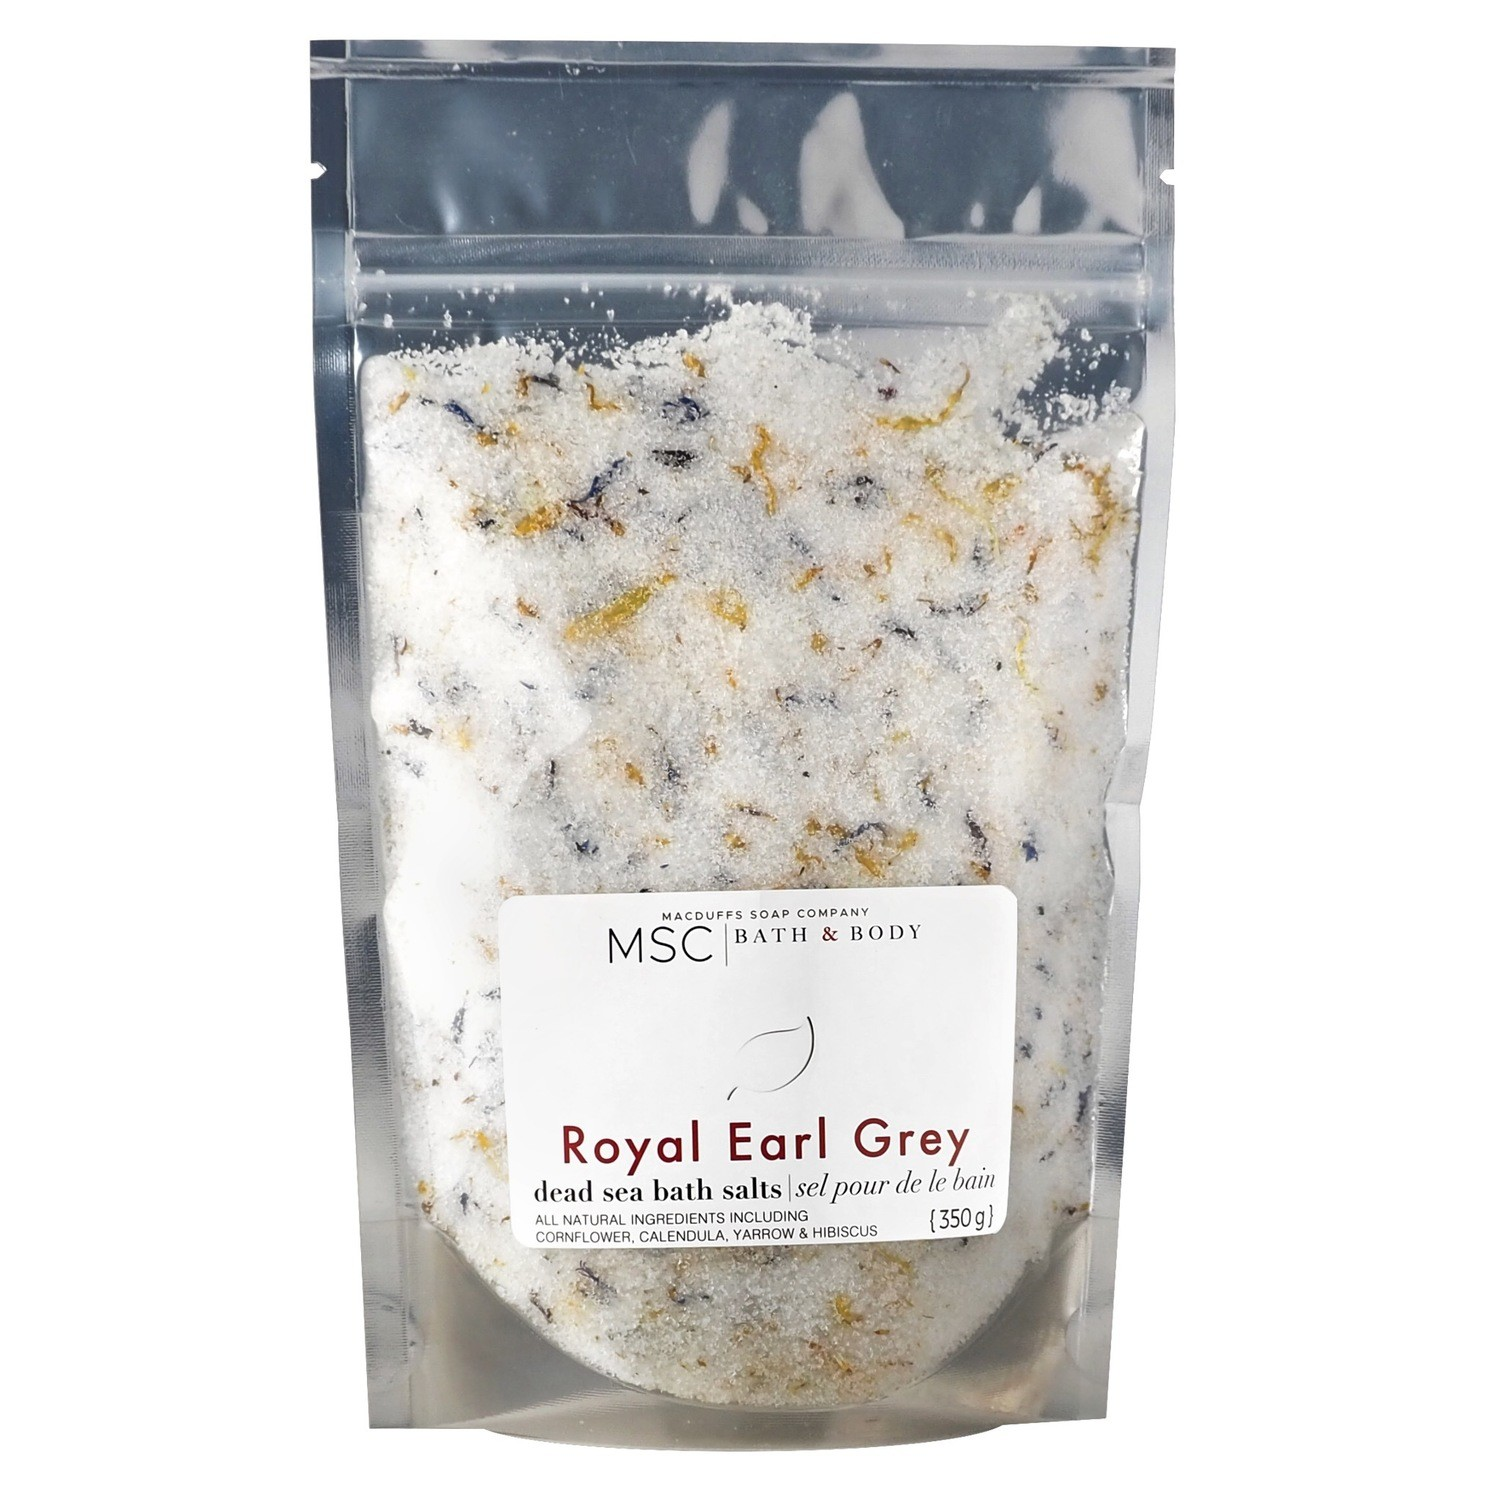 Royal Earl Grey Dead Sea Bath Salts